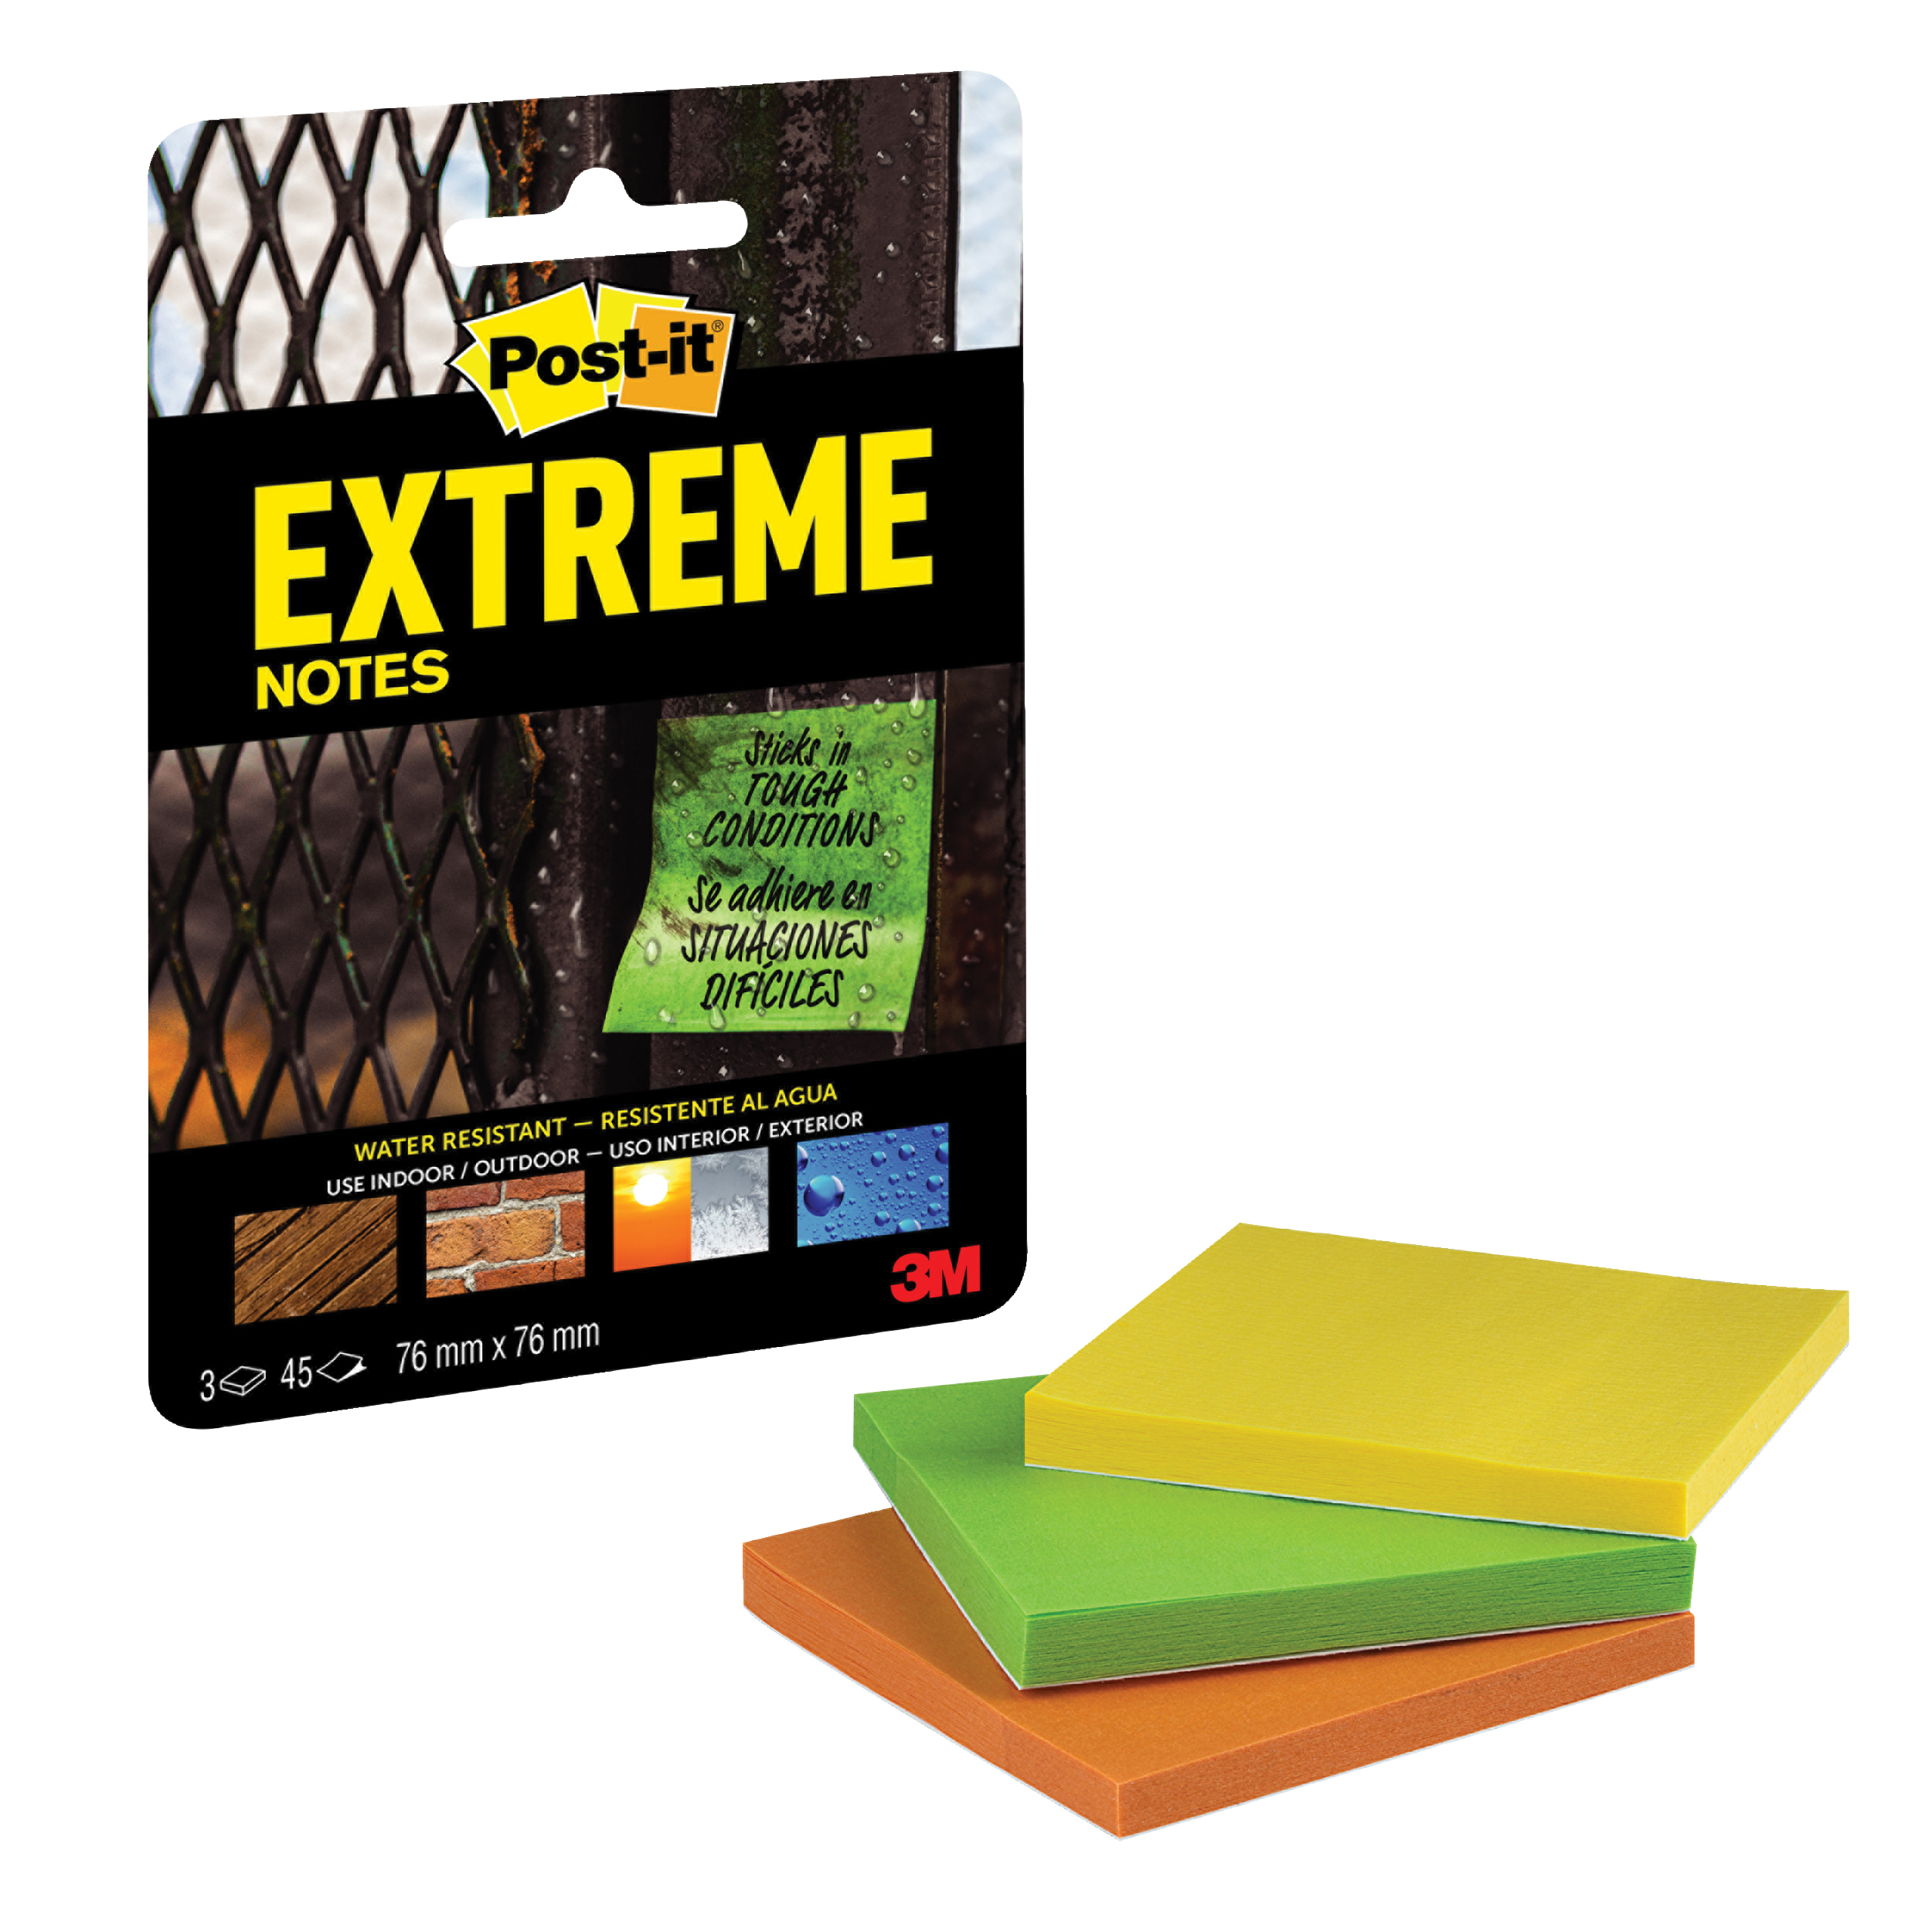 Post-it Extreme Notes 76x76mm Assorted 3 Colours Ref EXT33M-3-UKSP Packs of 3 Pads x 45 Sheets